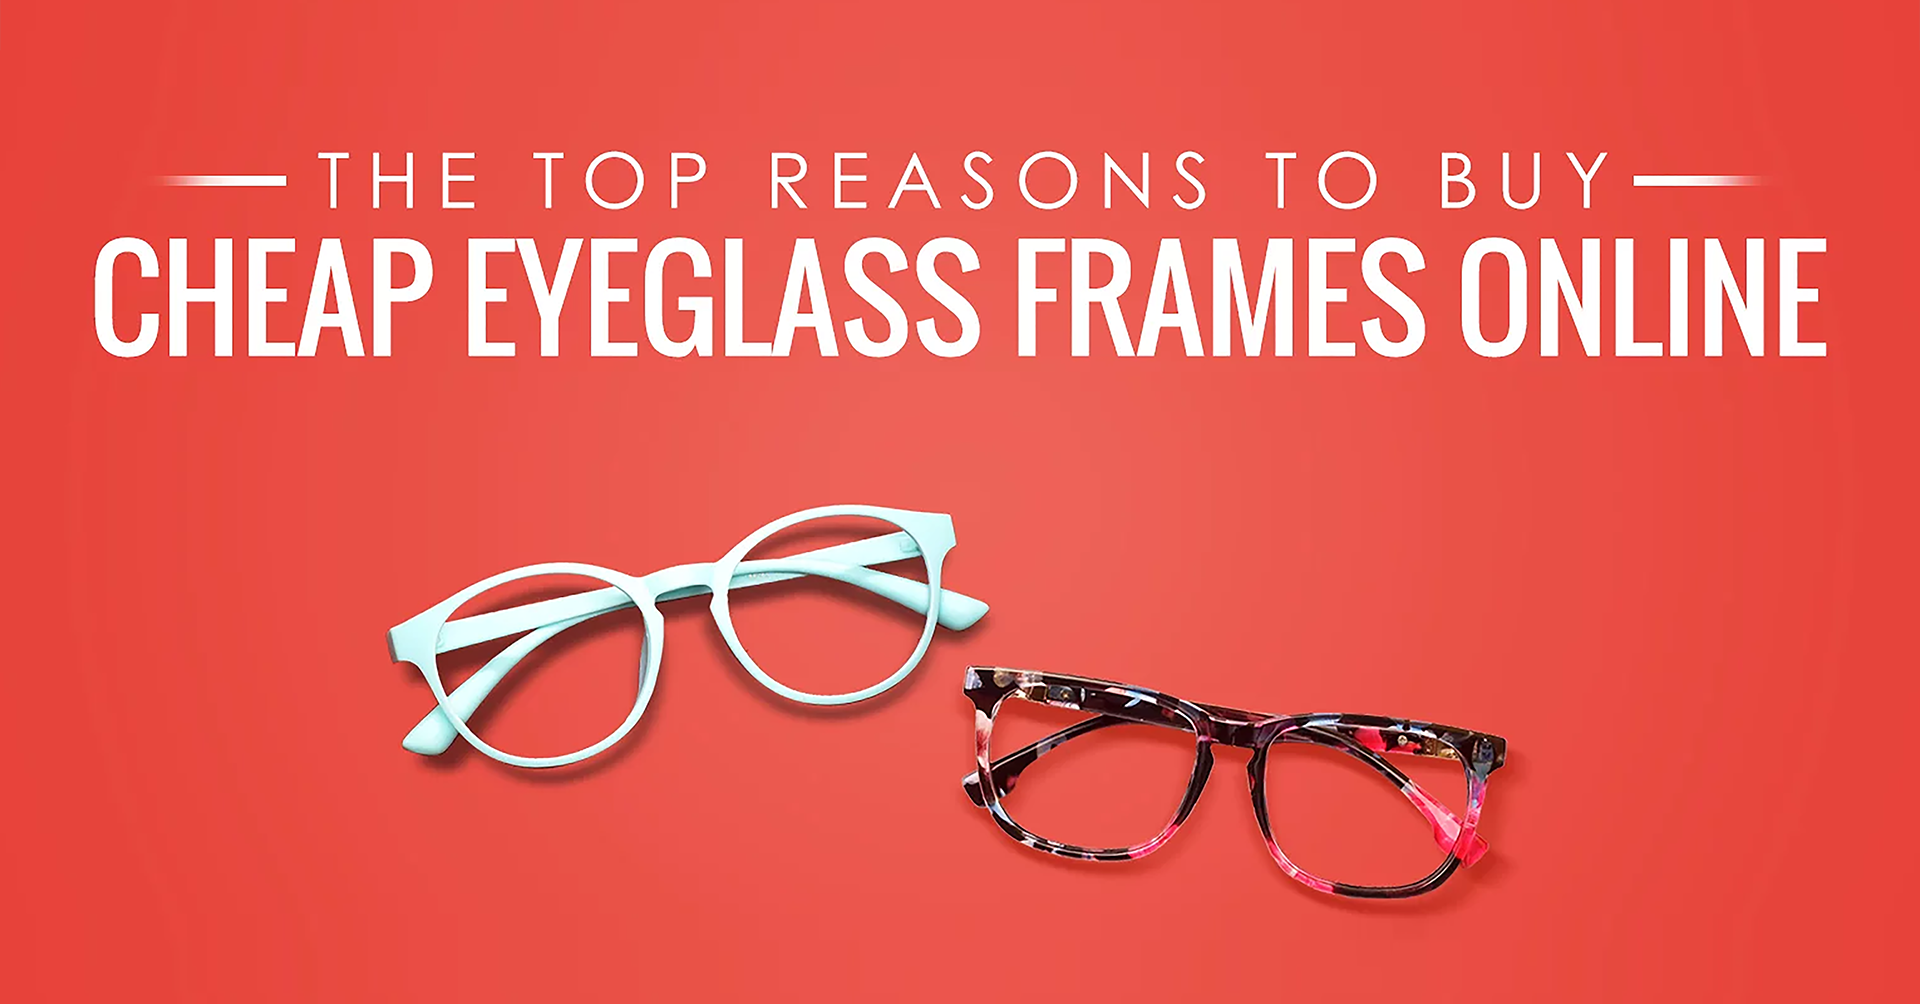 9)THE TOP REASONS TO BUY CHEAP EYEGLASS FRAMES ONLINE